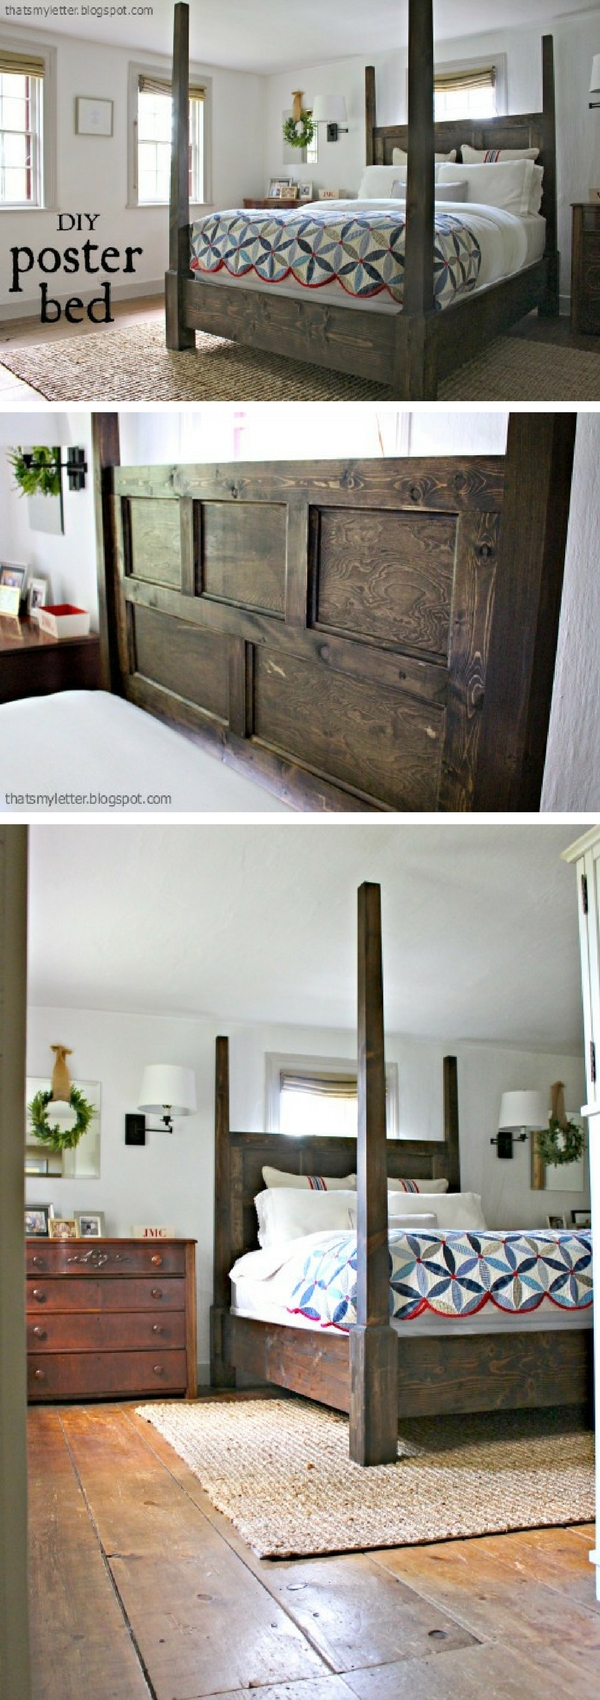 45 Easy DIY Bed Frame Projects You Can Build on a Budget - Check out the tutorial on how to build a DIY posted bed